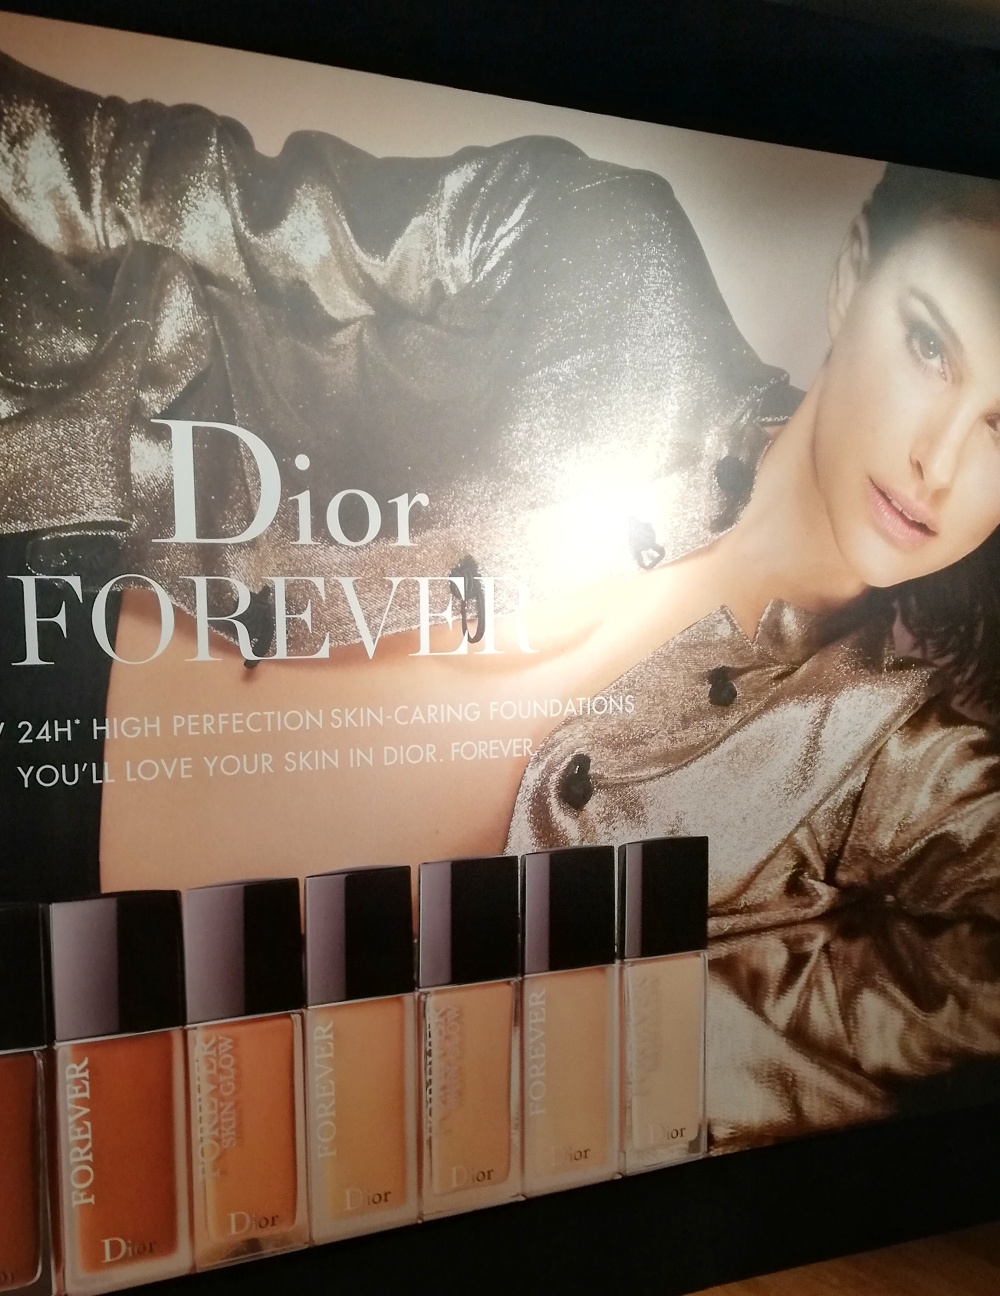 Campagna pubblicitari Dior Forever con Natalie Portman